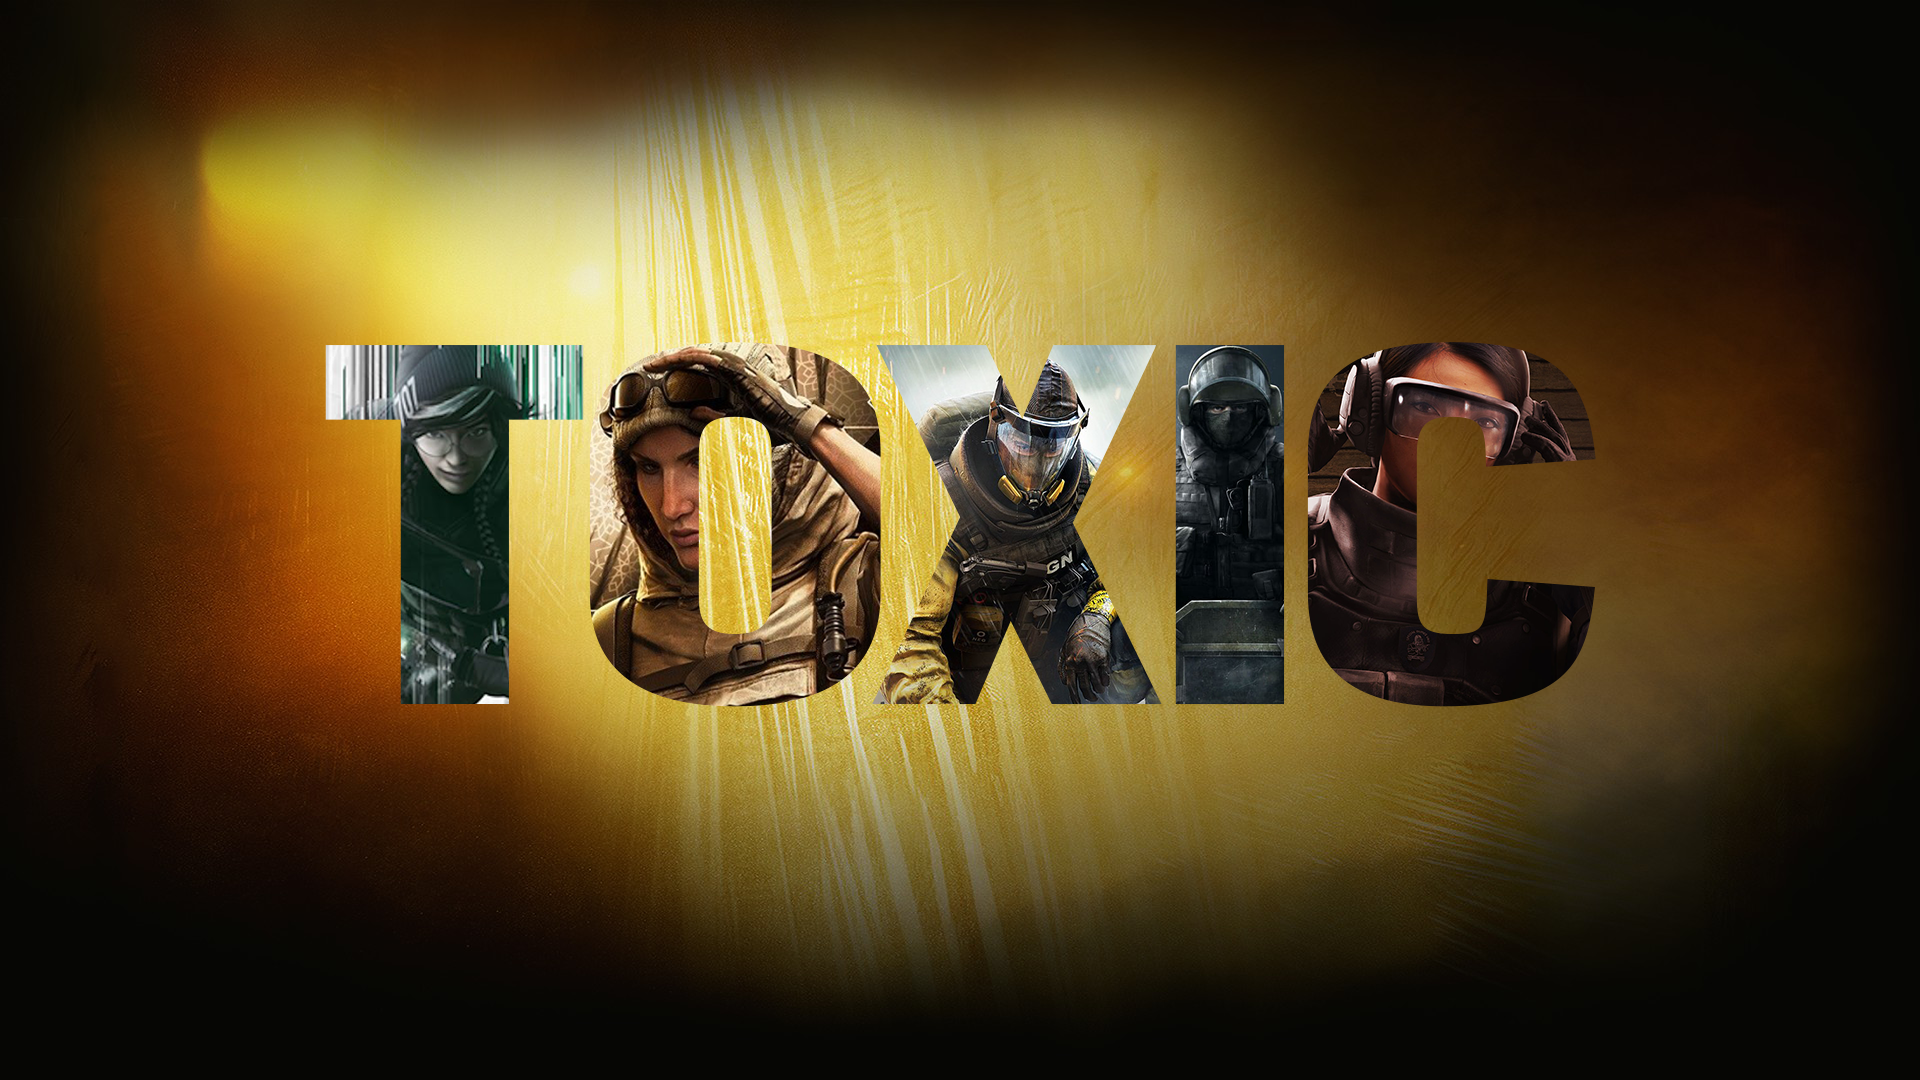 Download r6s wallpaper HD   Wallpapers Book   Your 1 Source for 1920x1080